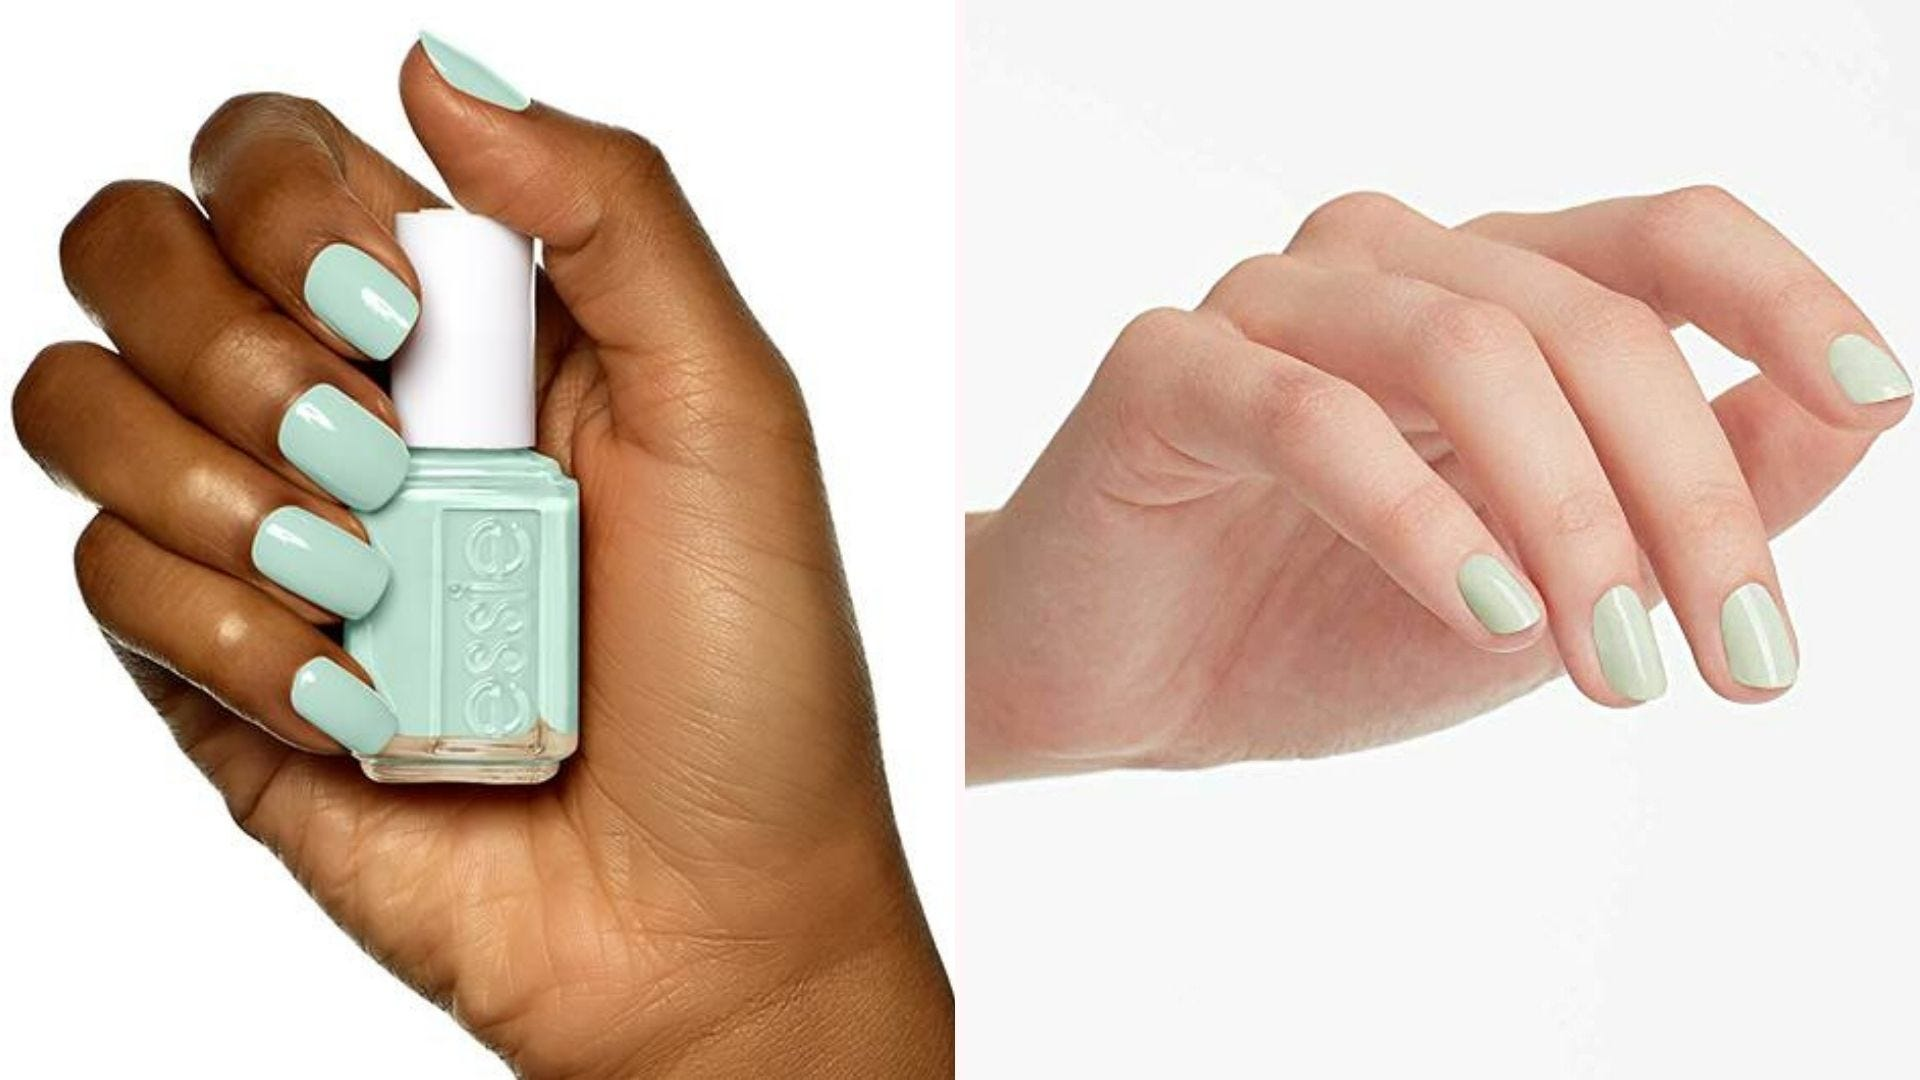 A dark-skinned hand with mint green nail polish and a bottle of the polish; a light-skinned hand with pale green nails